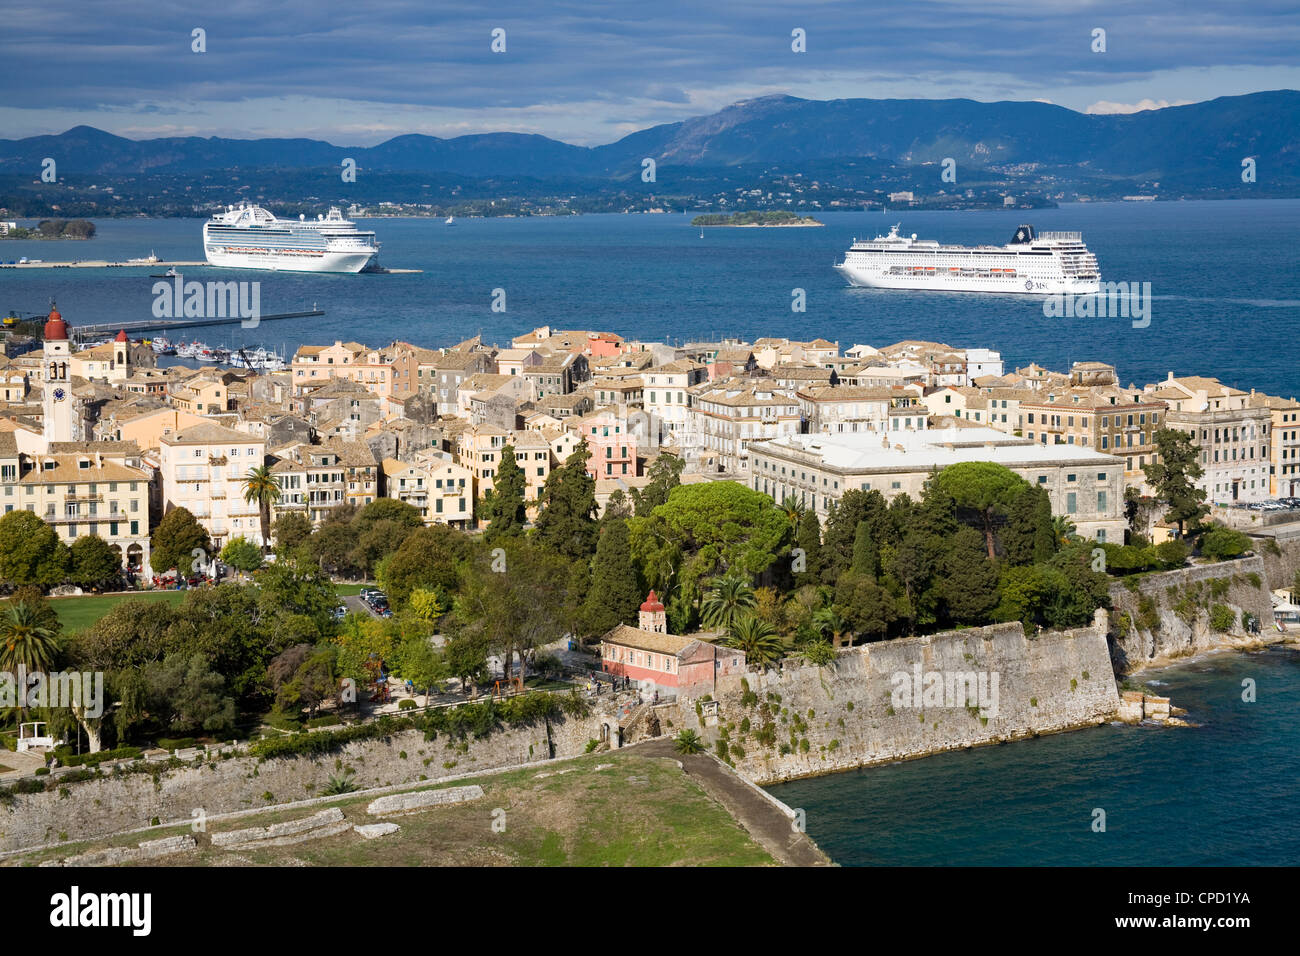 Old Town, Corfu, Ionian Islands, Greek Islands, Greece, Europe Stock Photo